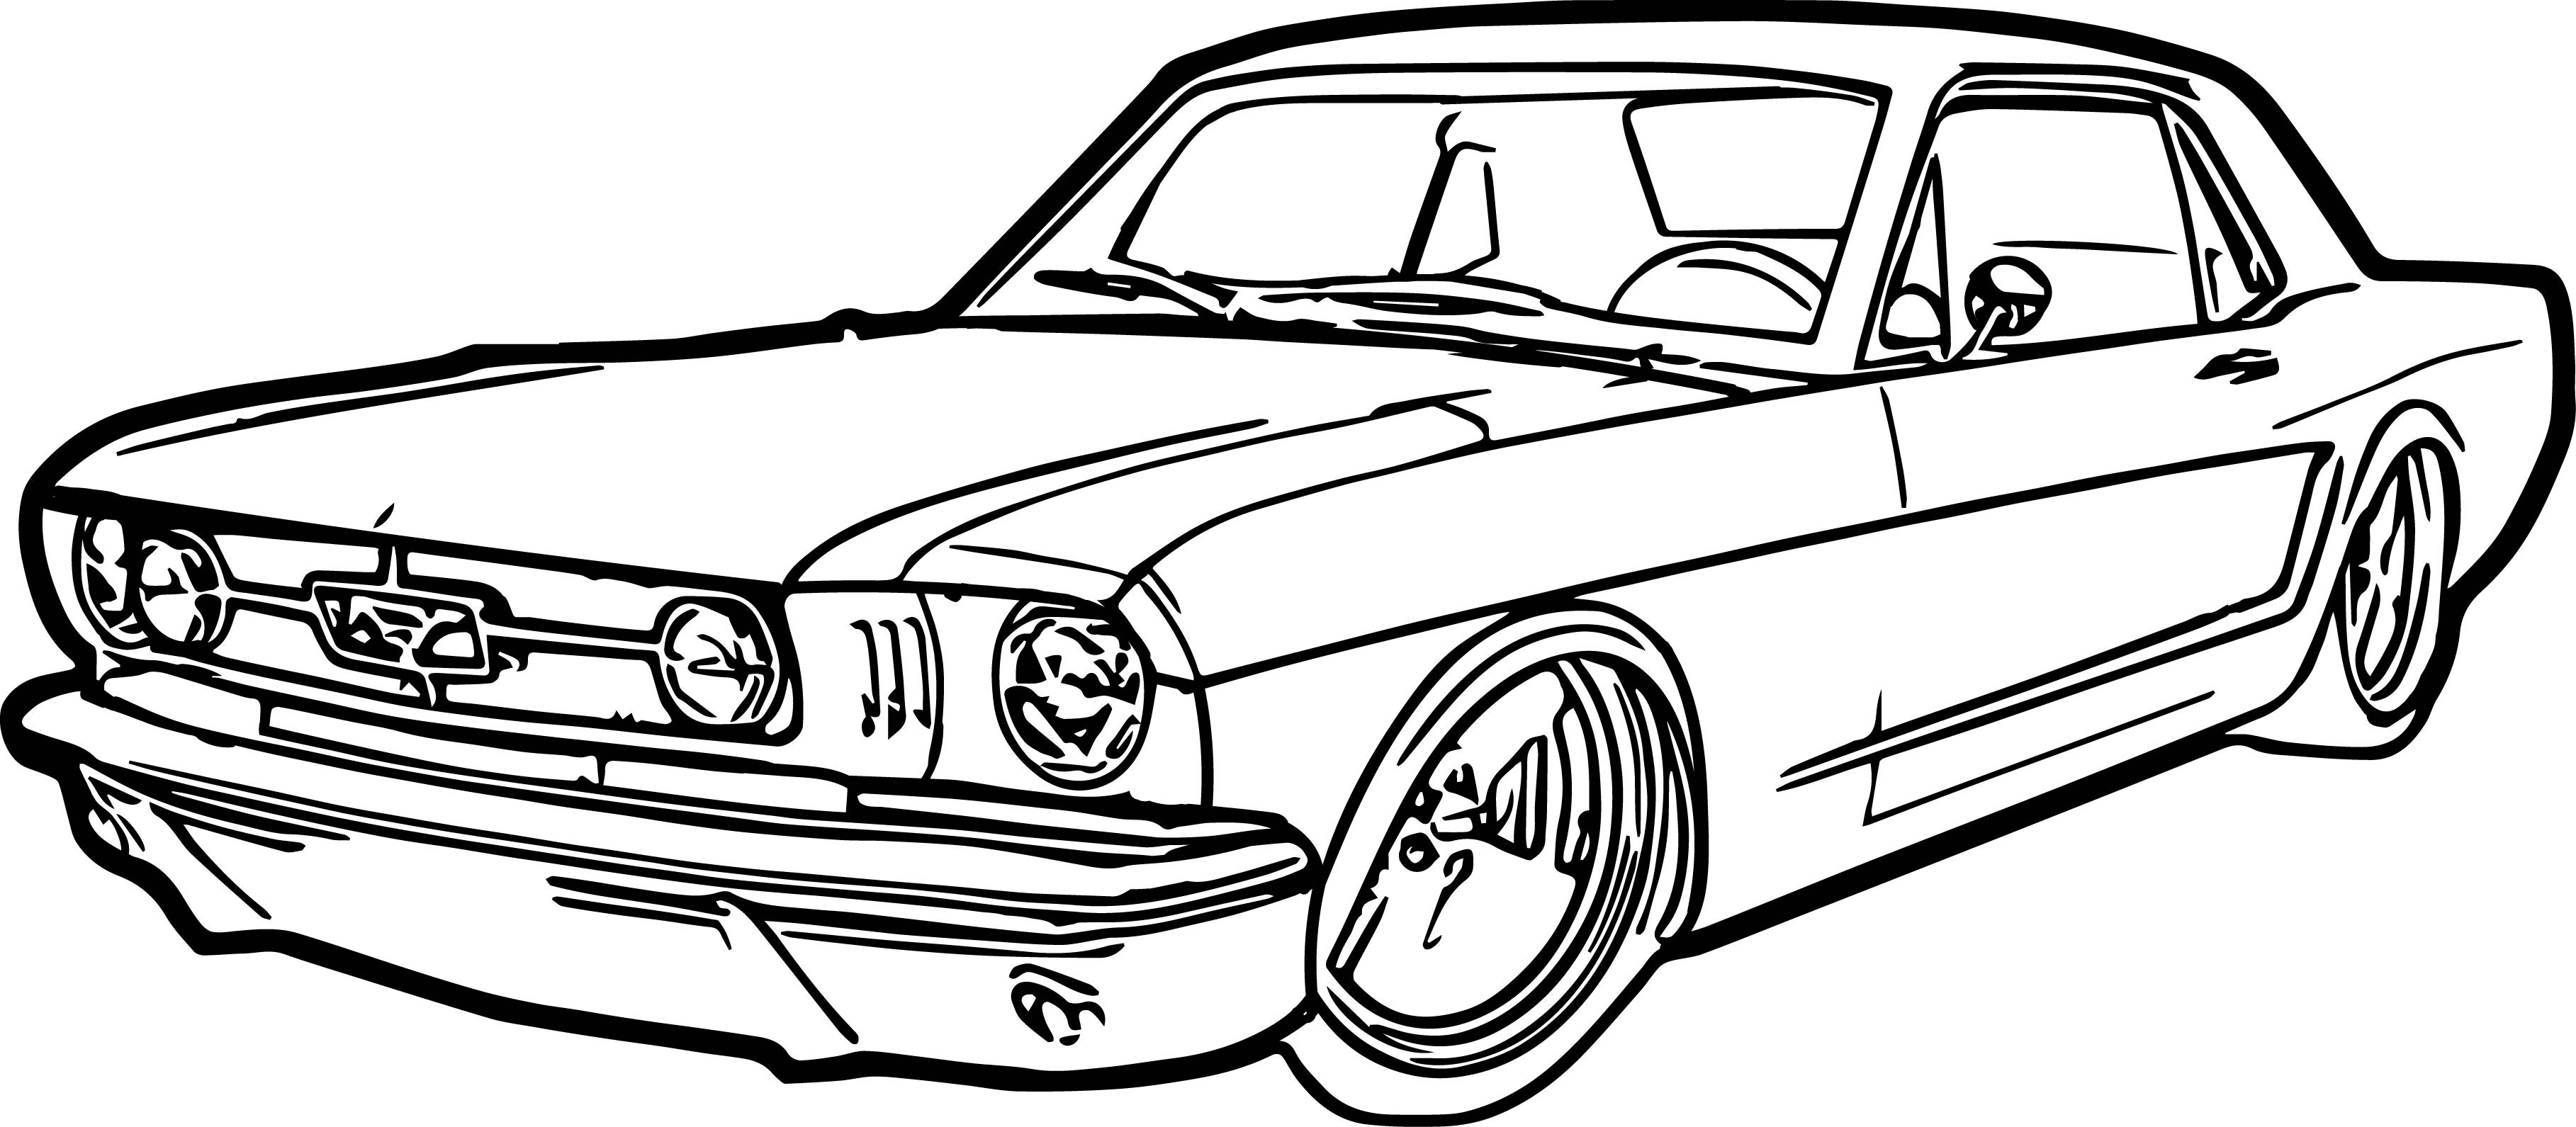 3635x1591 Simple Race Car Coloring Pages New Cool Sports Racing Of Cars